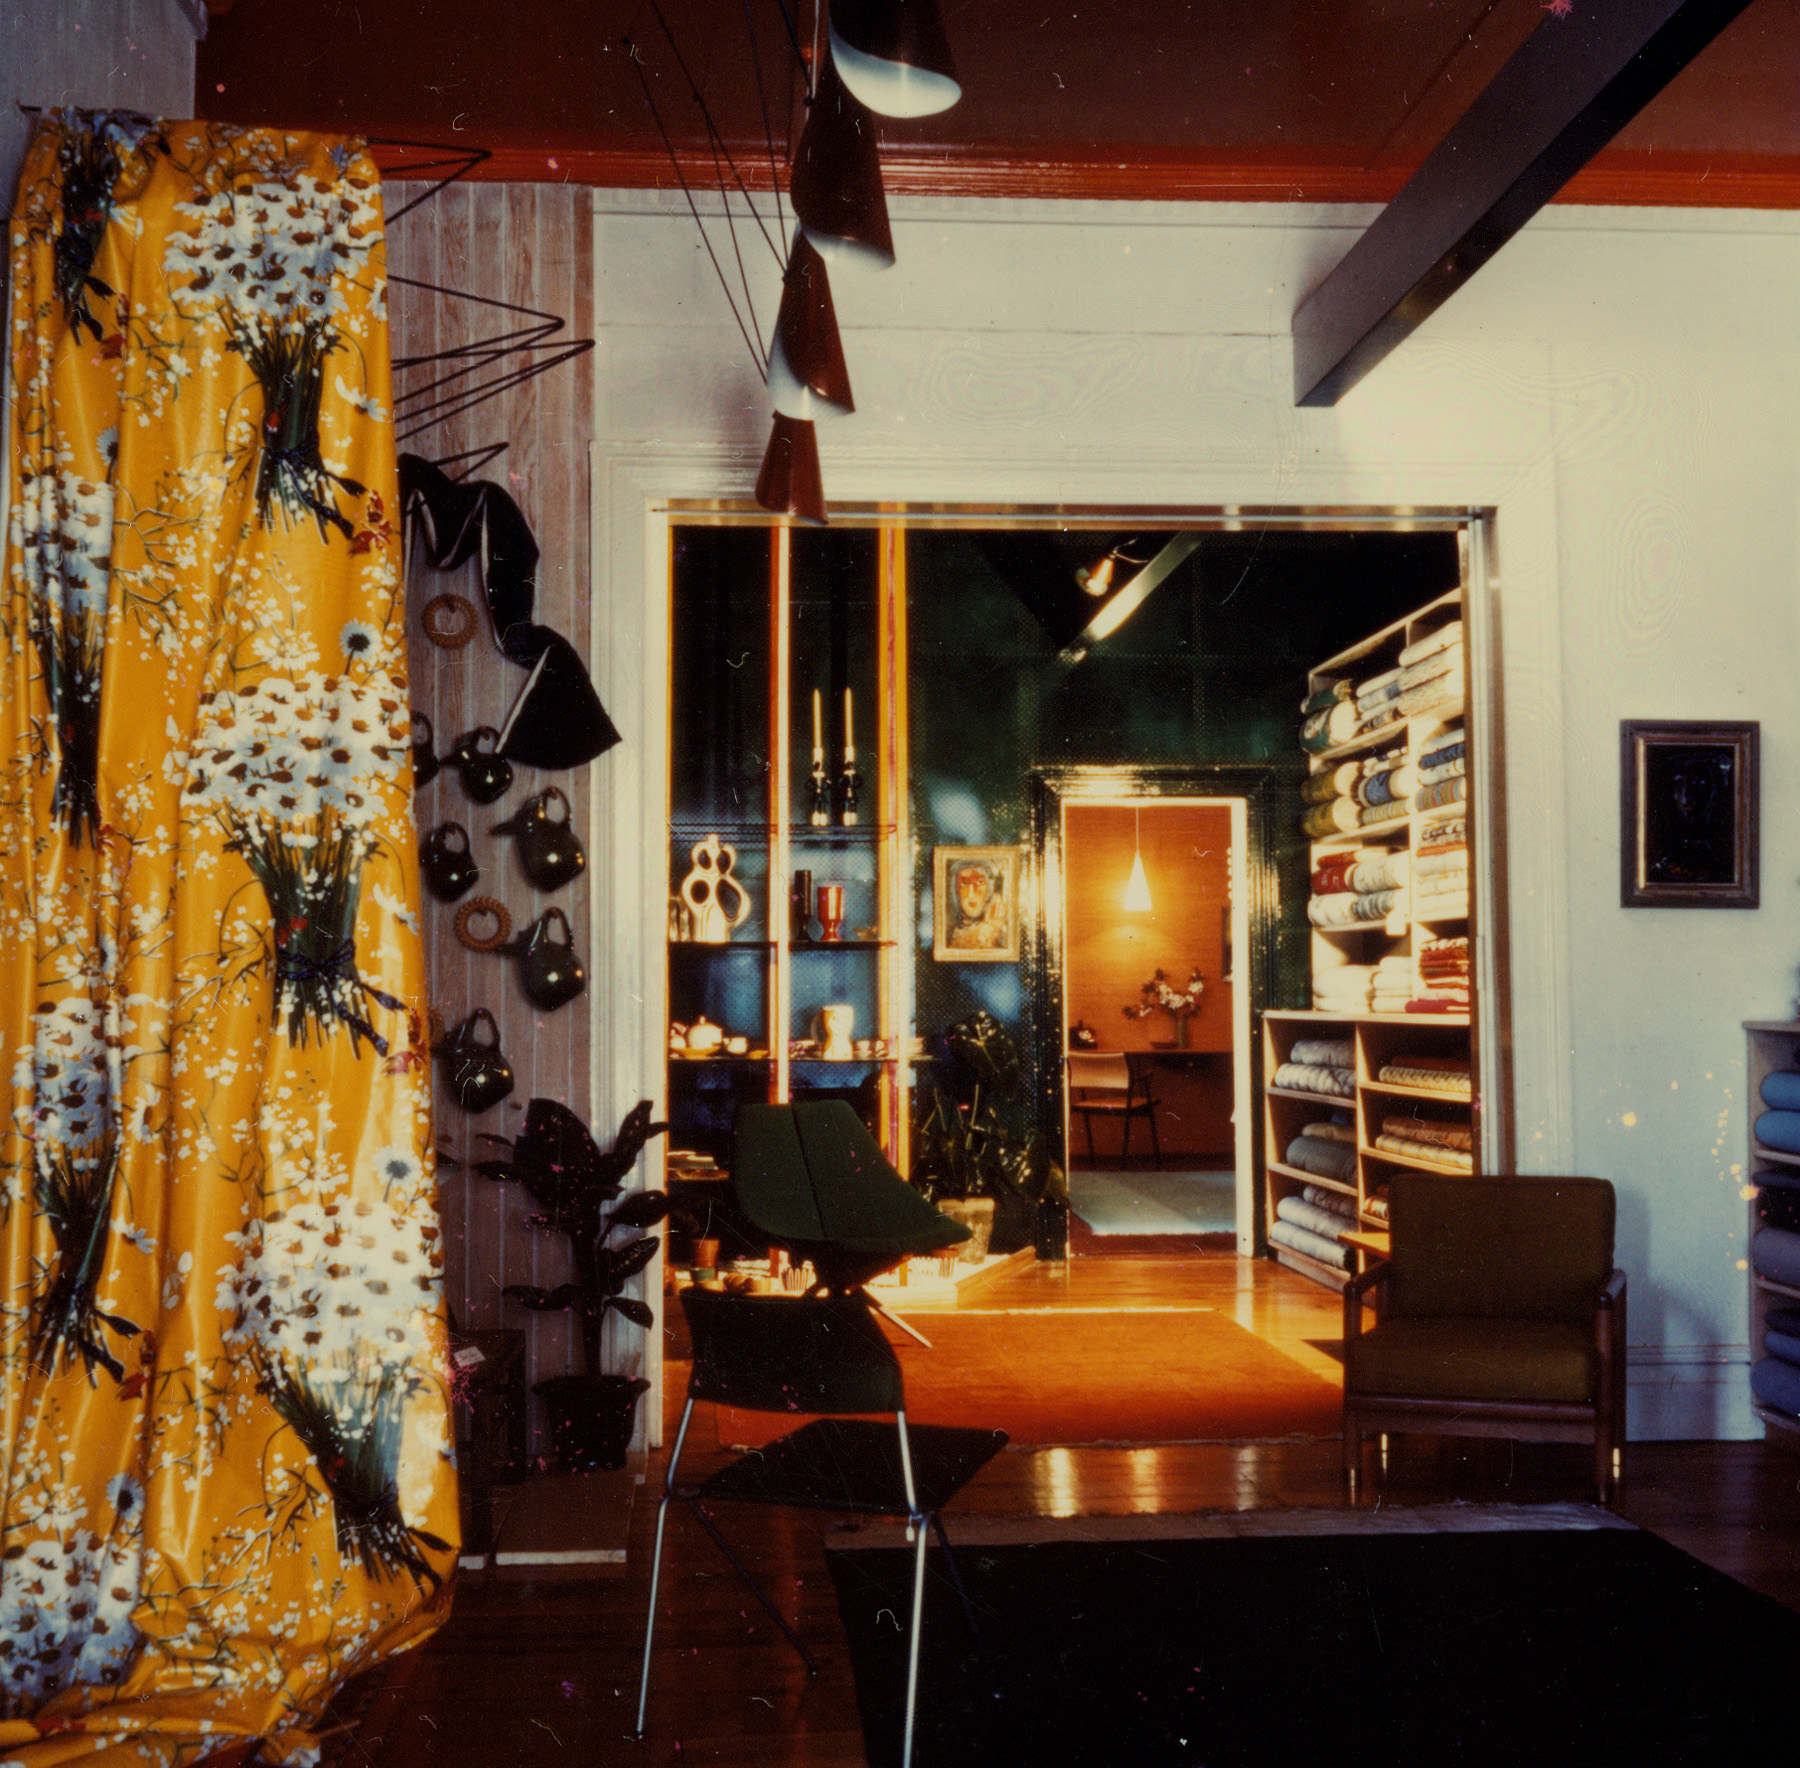 Marion Best Pty Ltd showroom, Queen Street Woollahra, 1956 / photographed by Antonia Blaxland